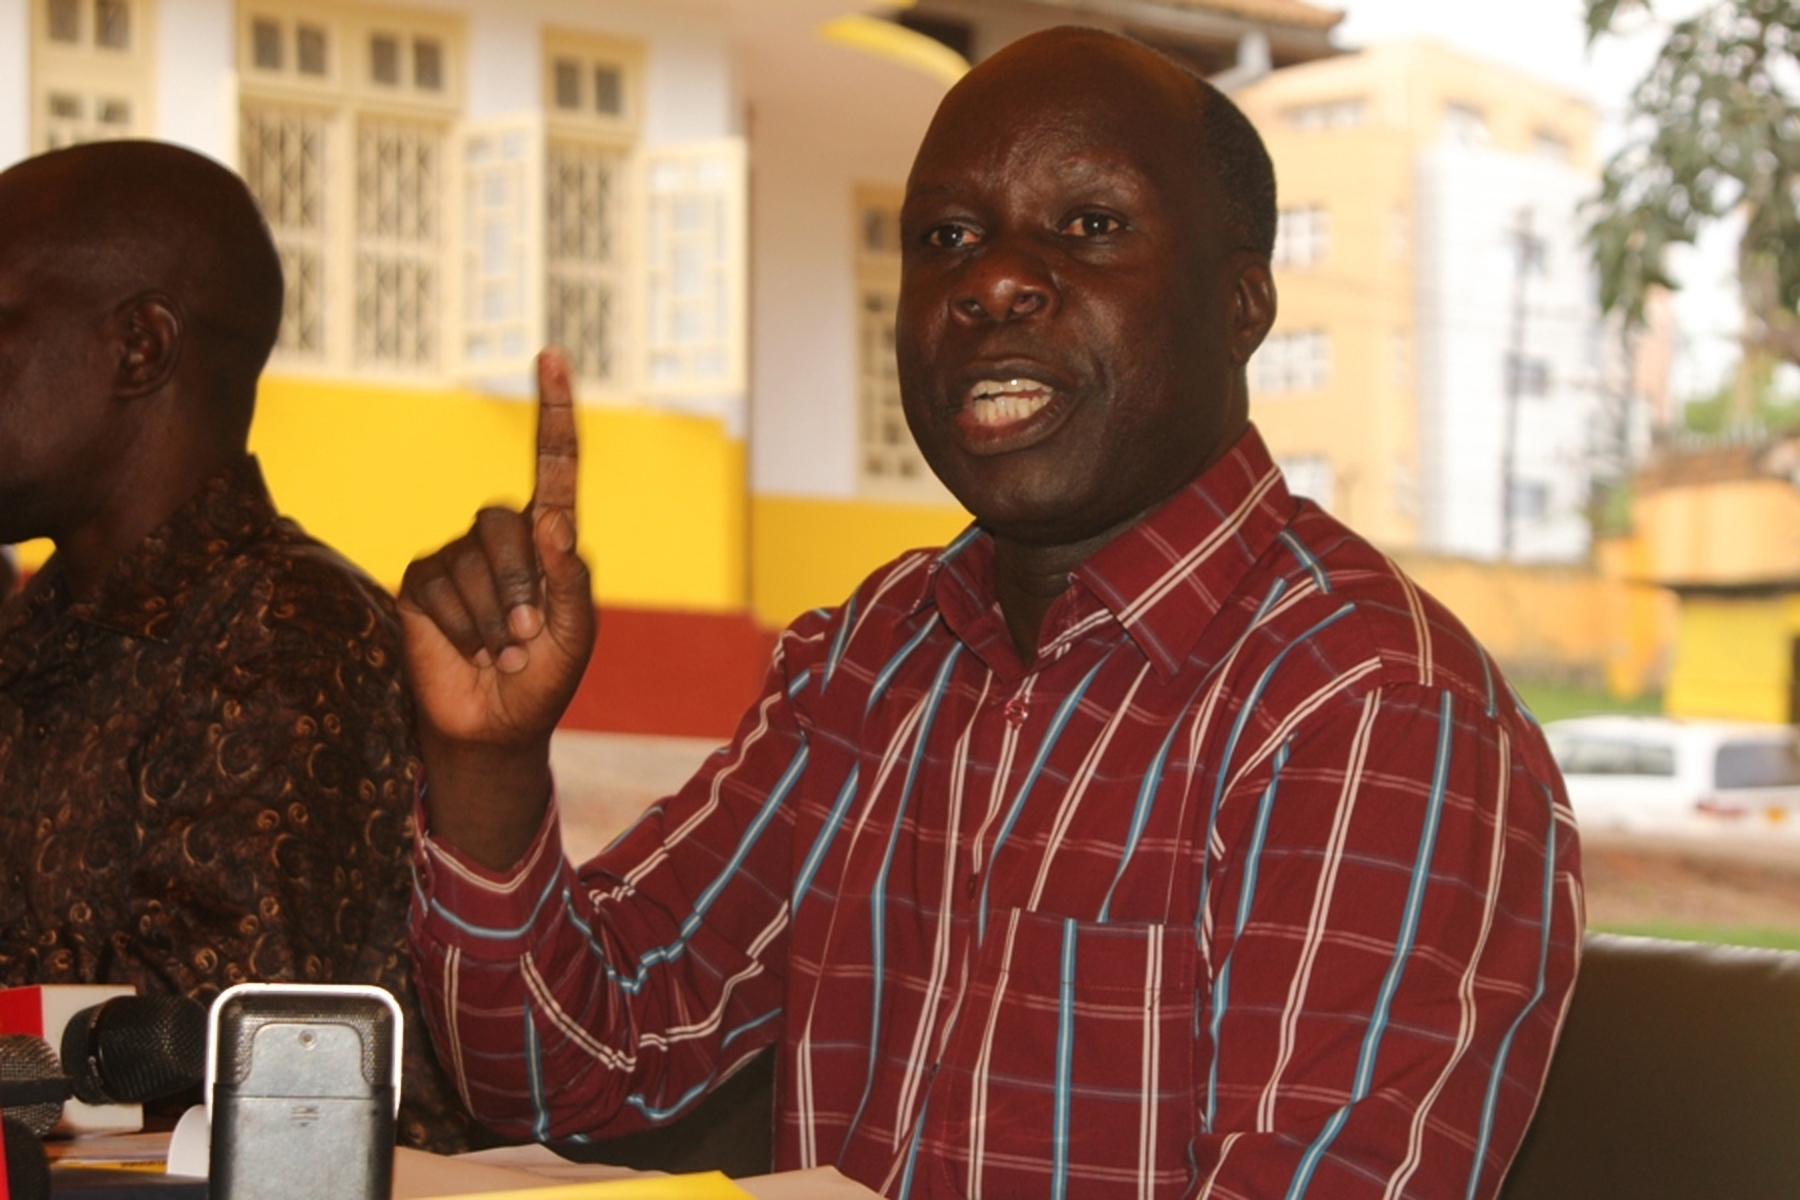 The NRM electoral commission Chairman, Mr Tanga Odoi, believes all the contestants have the potential to carry the party flag r to retain the seat following the assassination of Col (Rtd) Ibrahim Abiriga (FILE PHOTO)